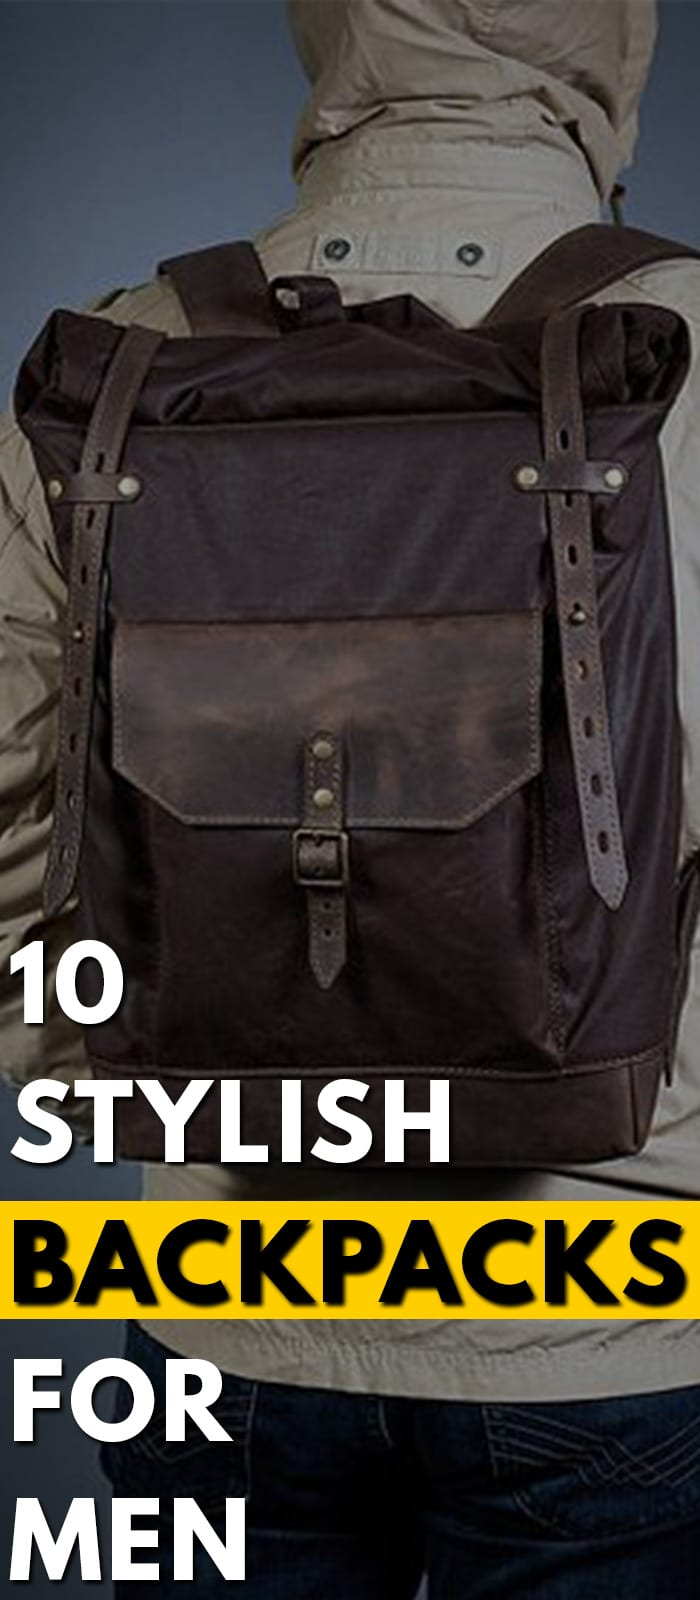 10-Stylish-Backpacks-For-Men...........